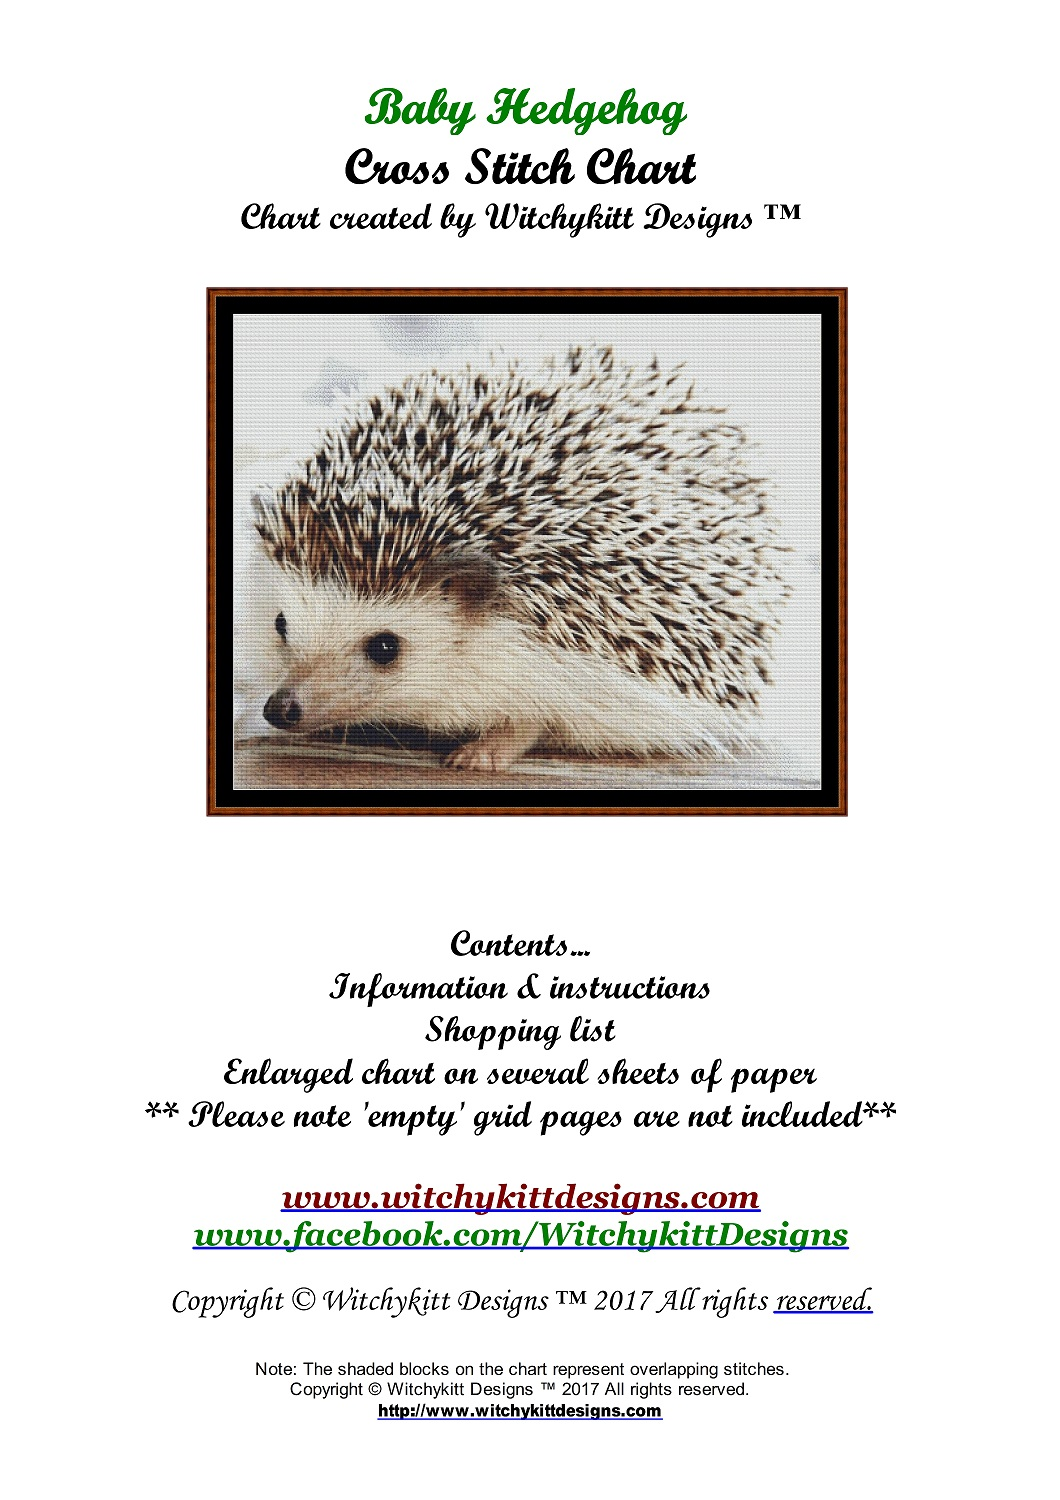 Baby Hedgehog Cross Stitch